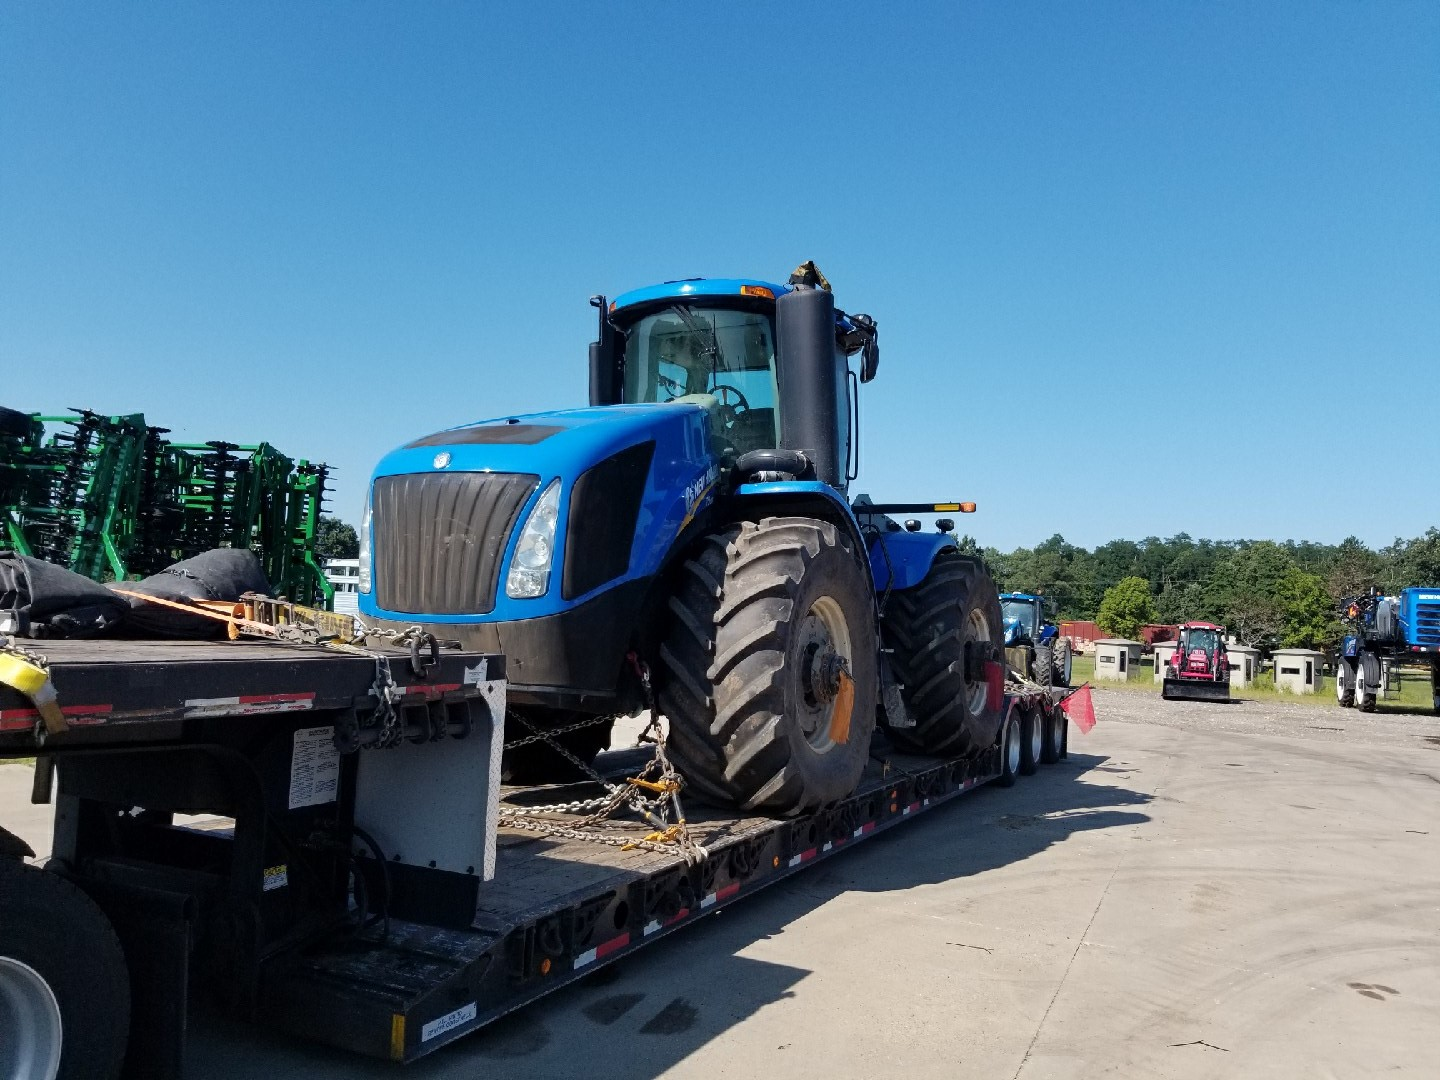 New Holland T9.615 Tractor being transported